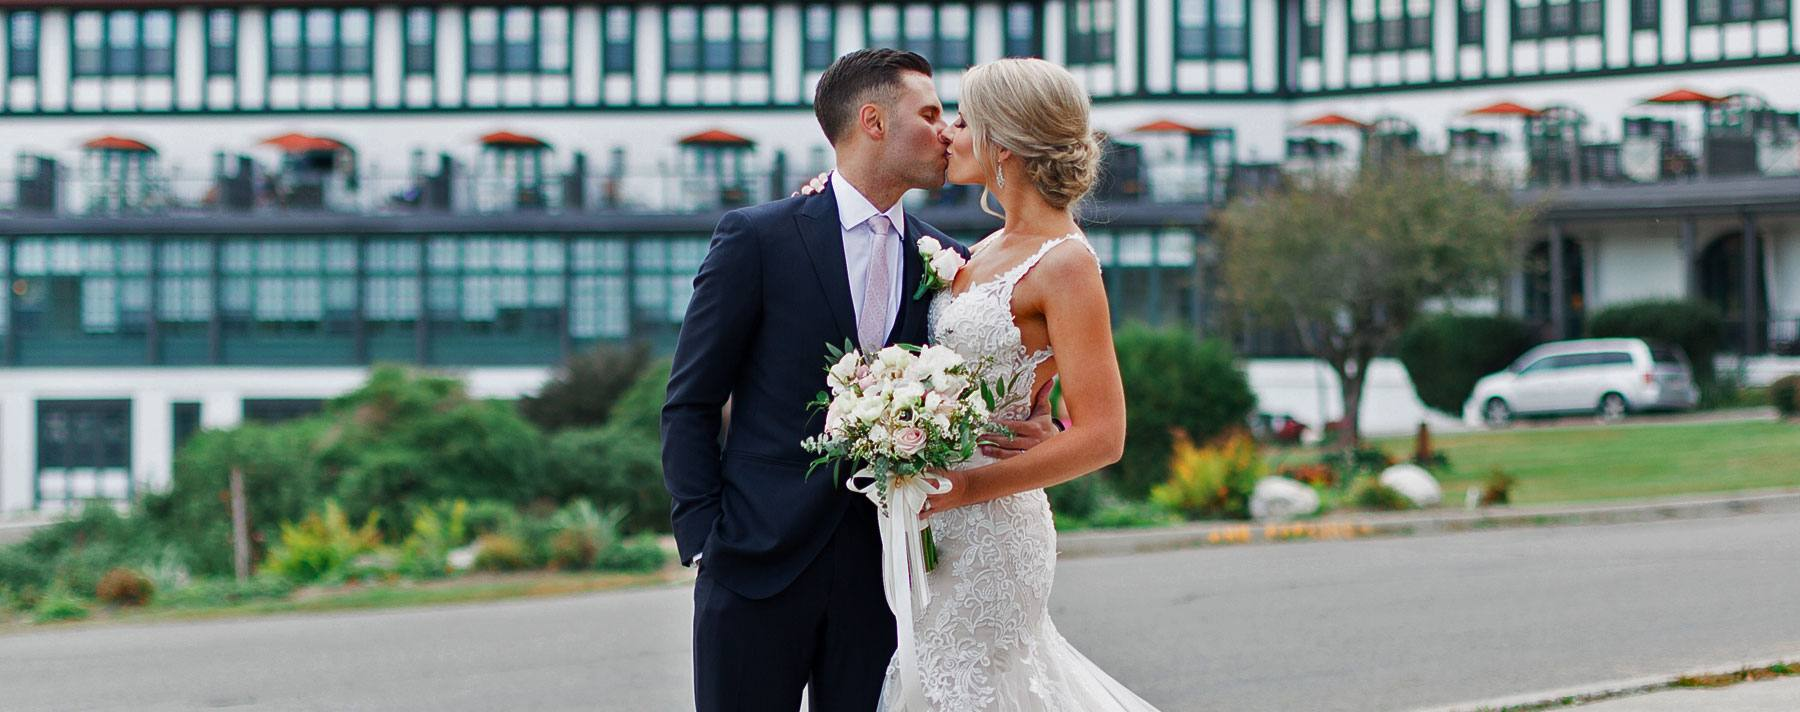 Wedding at Algonquinresort, Andrews By The Sea